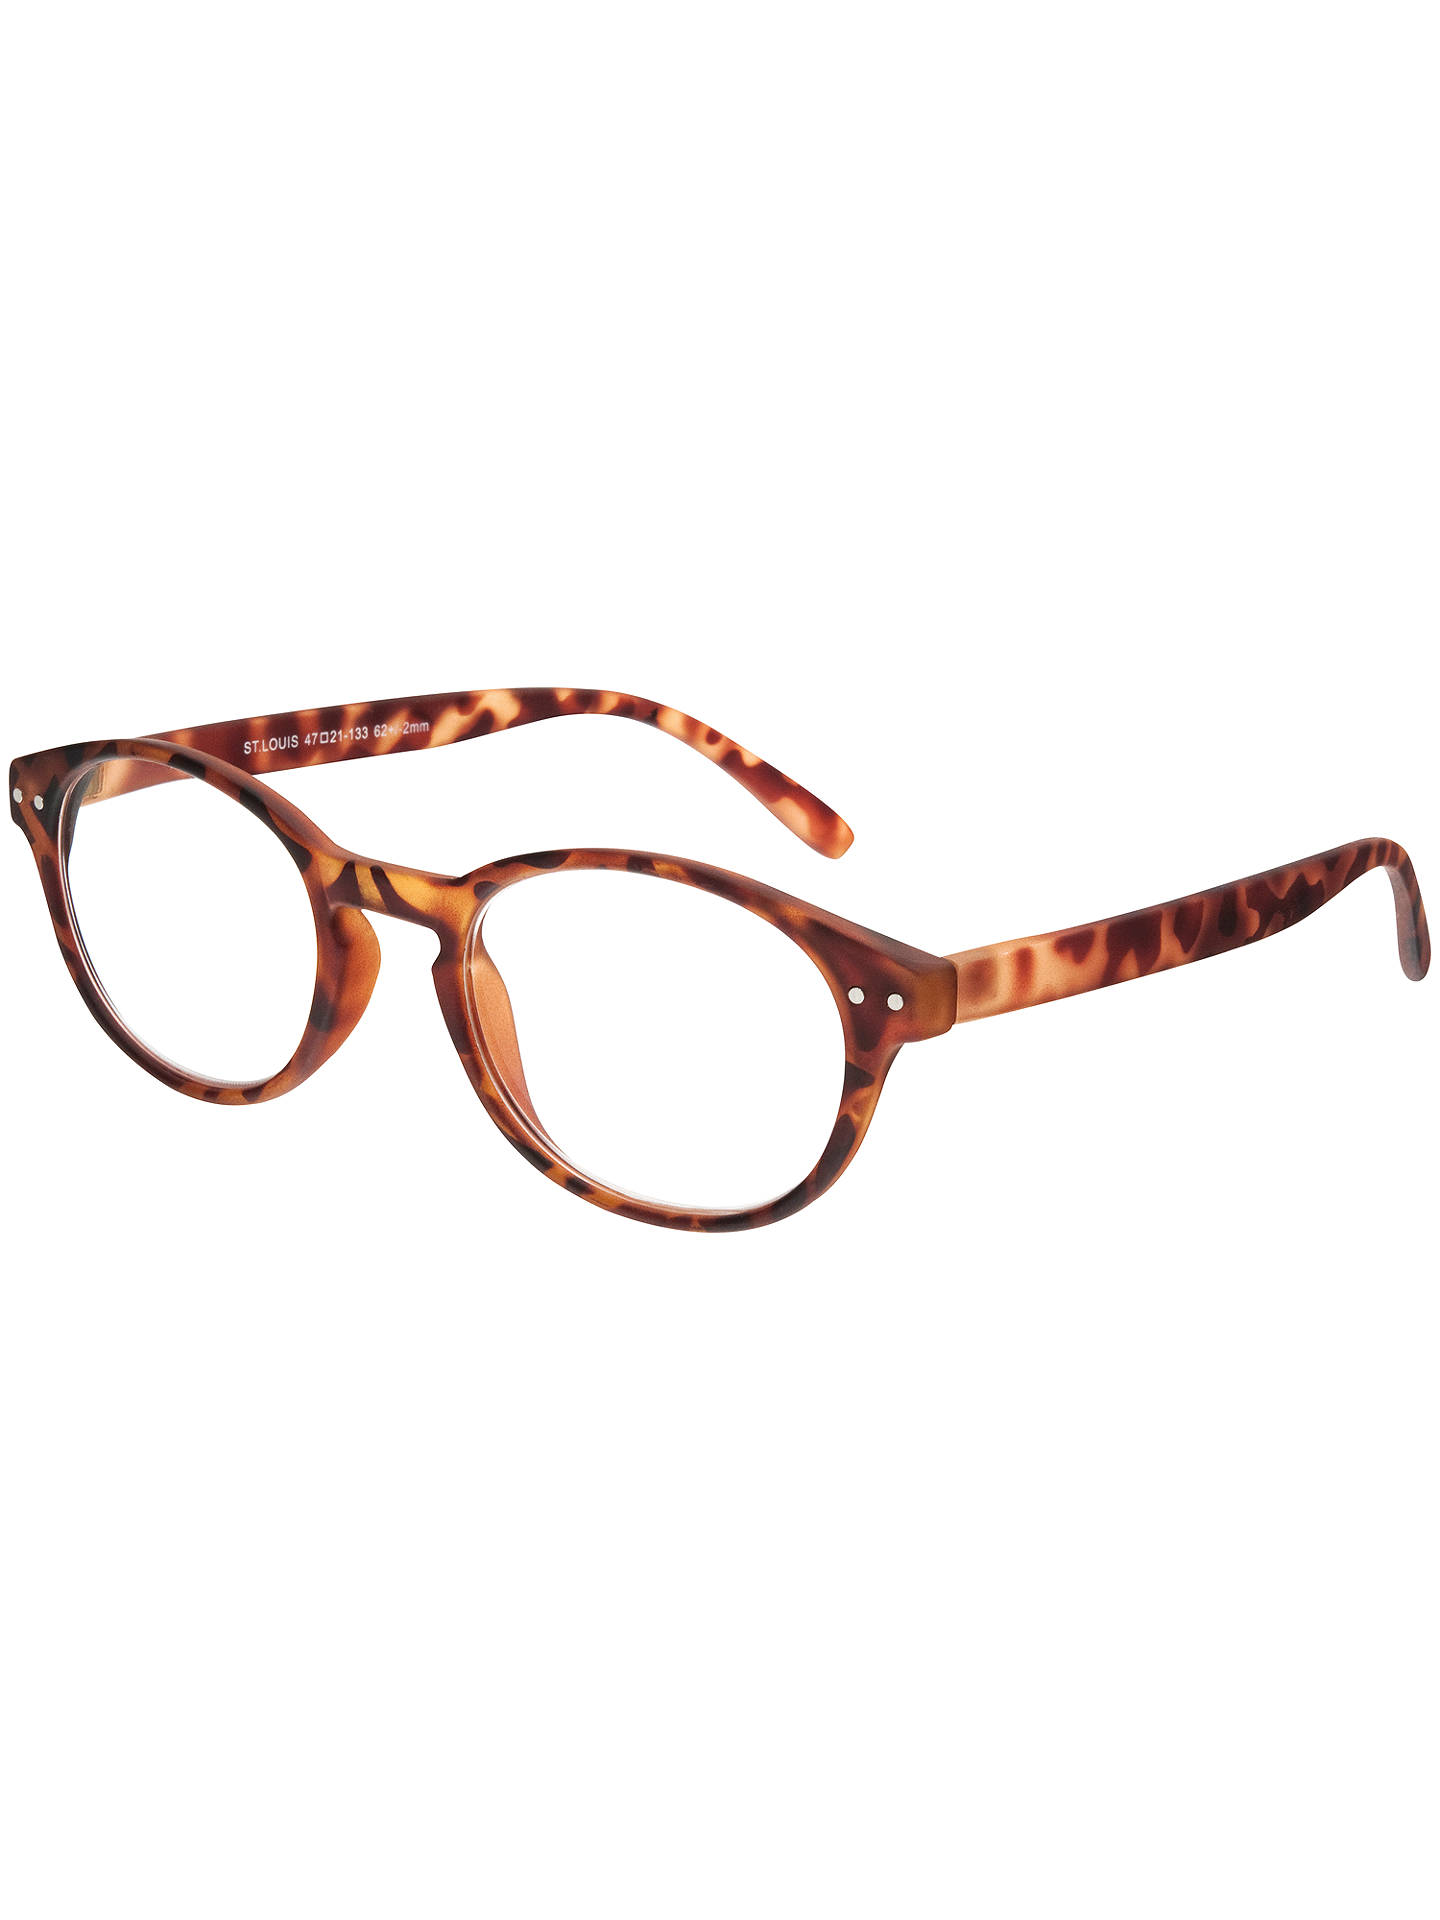 BuyMagnif Eyes Ready Readers St Louis Glasses, Tortoise, 1.5 Online at johnlewis.com